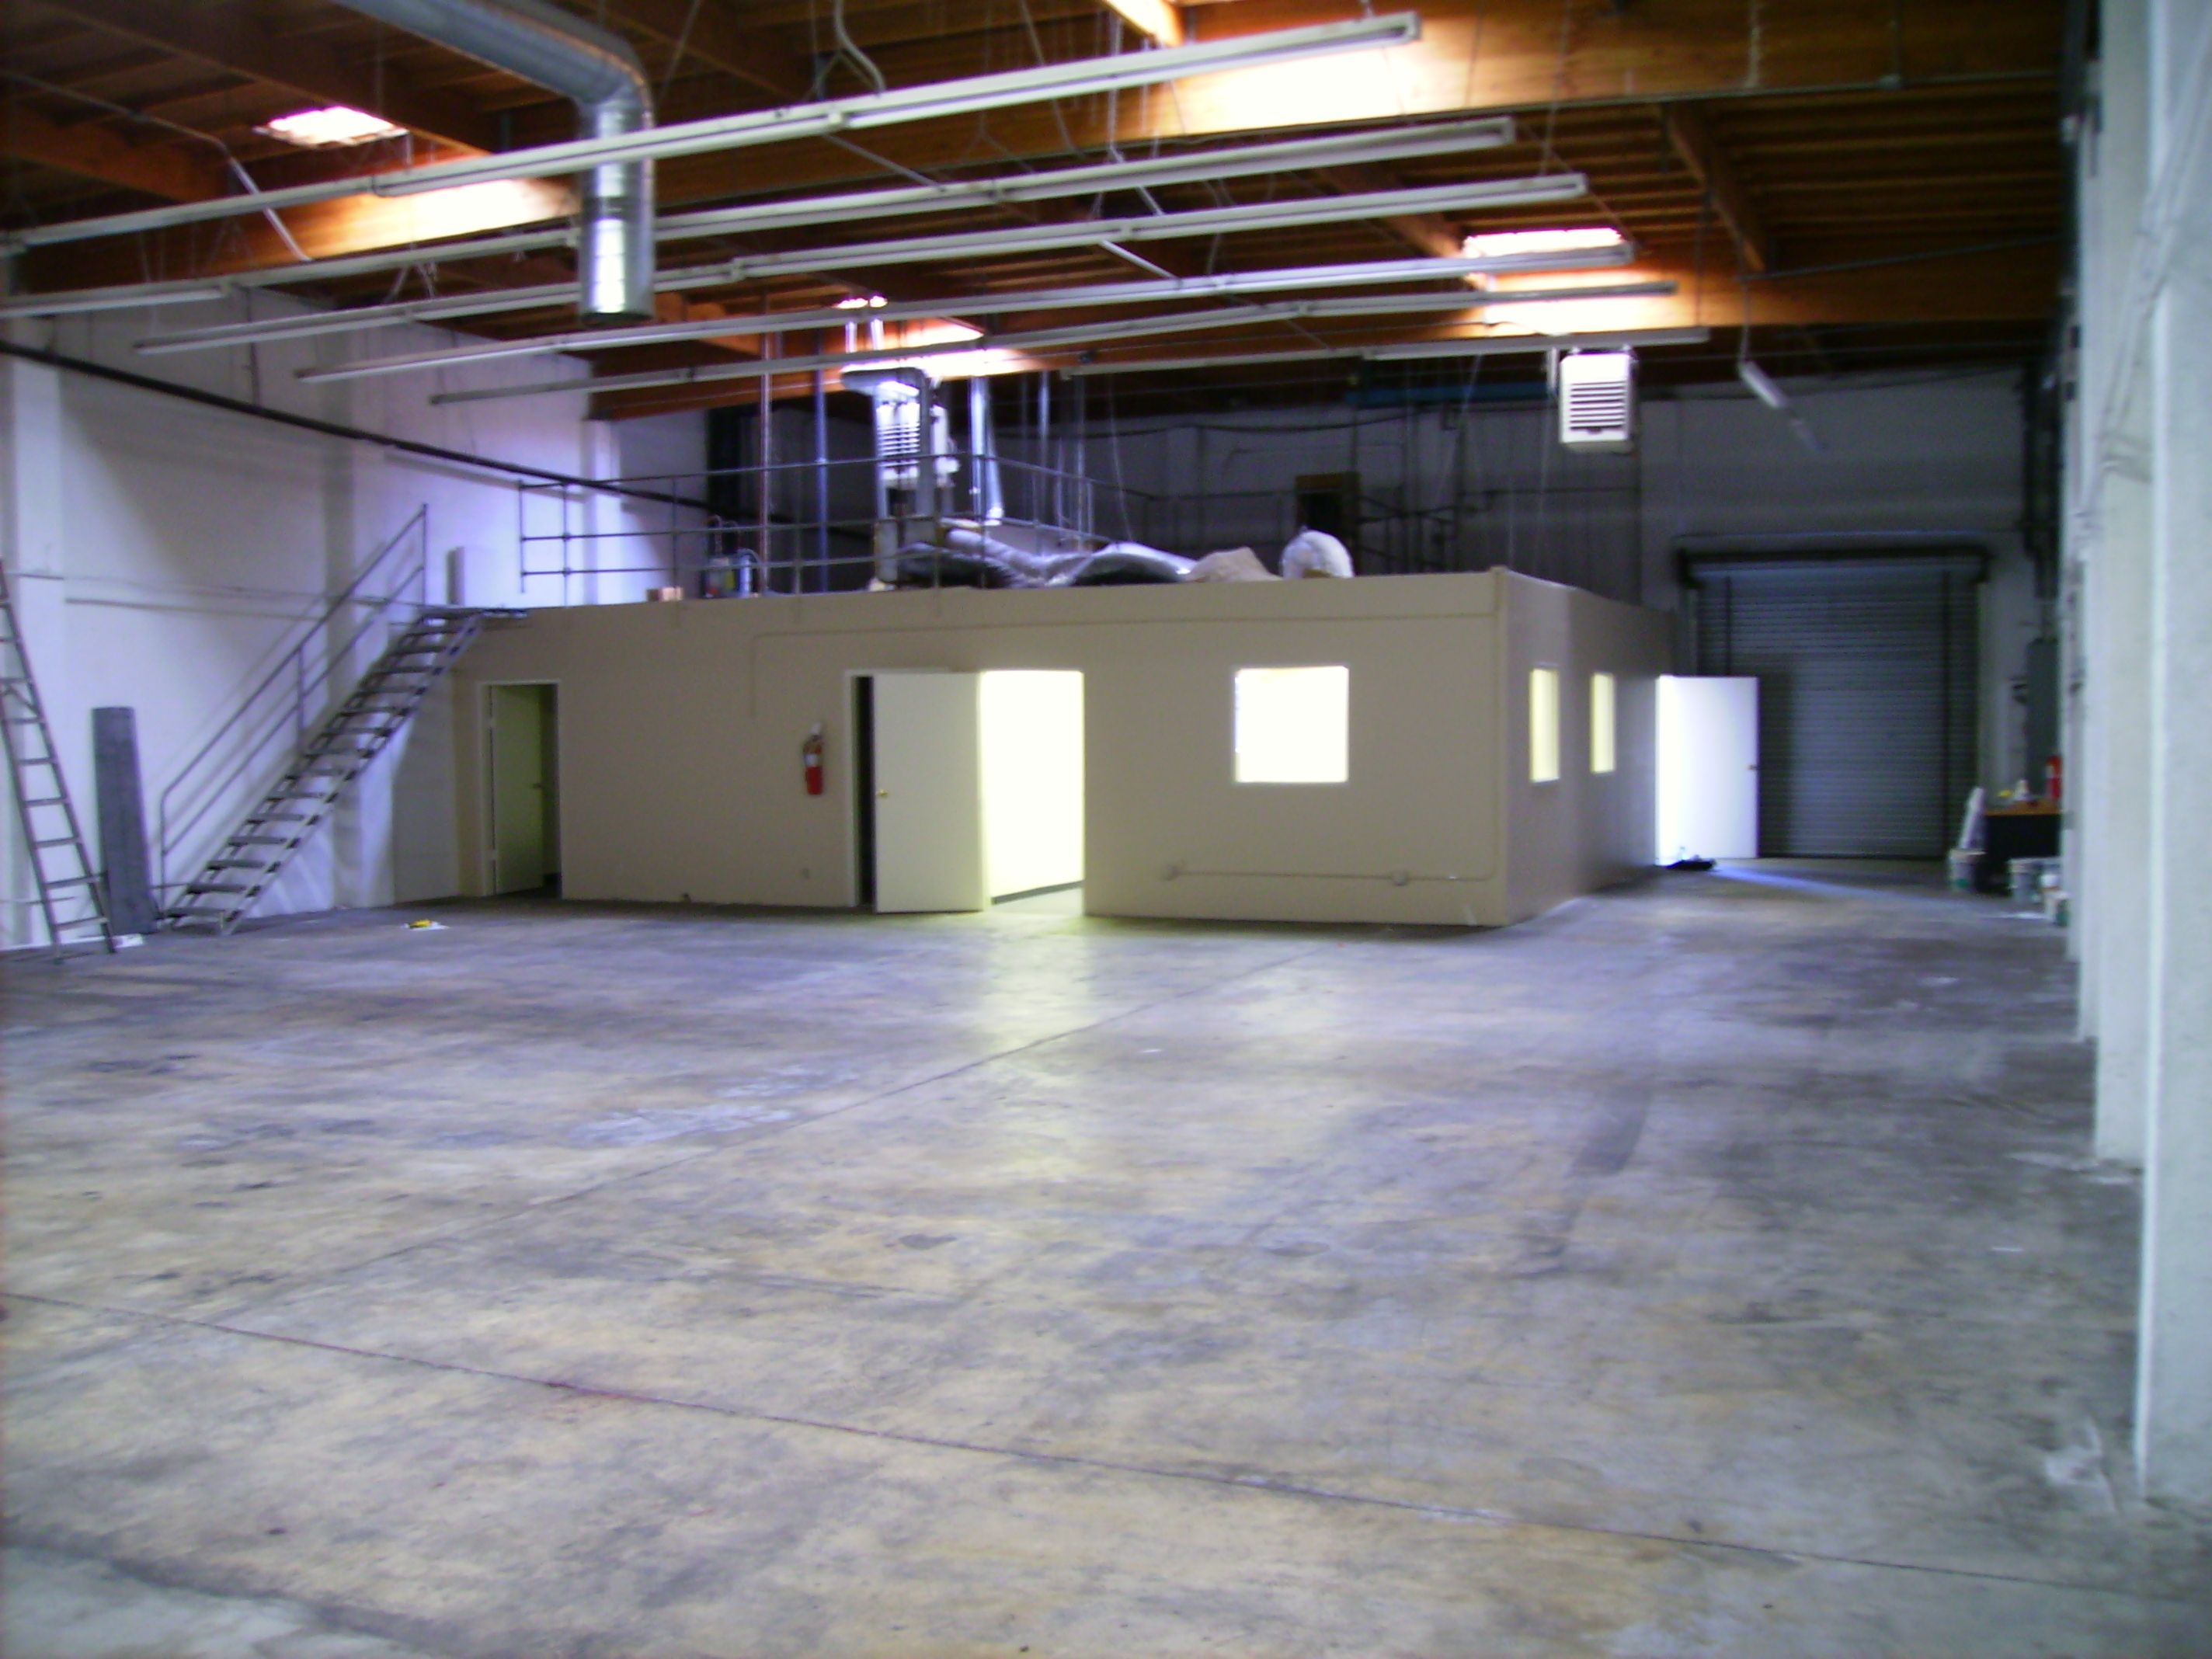 Warehouse space drama workshop ideas pinterest for Build office in garage